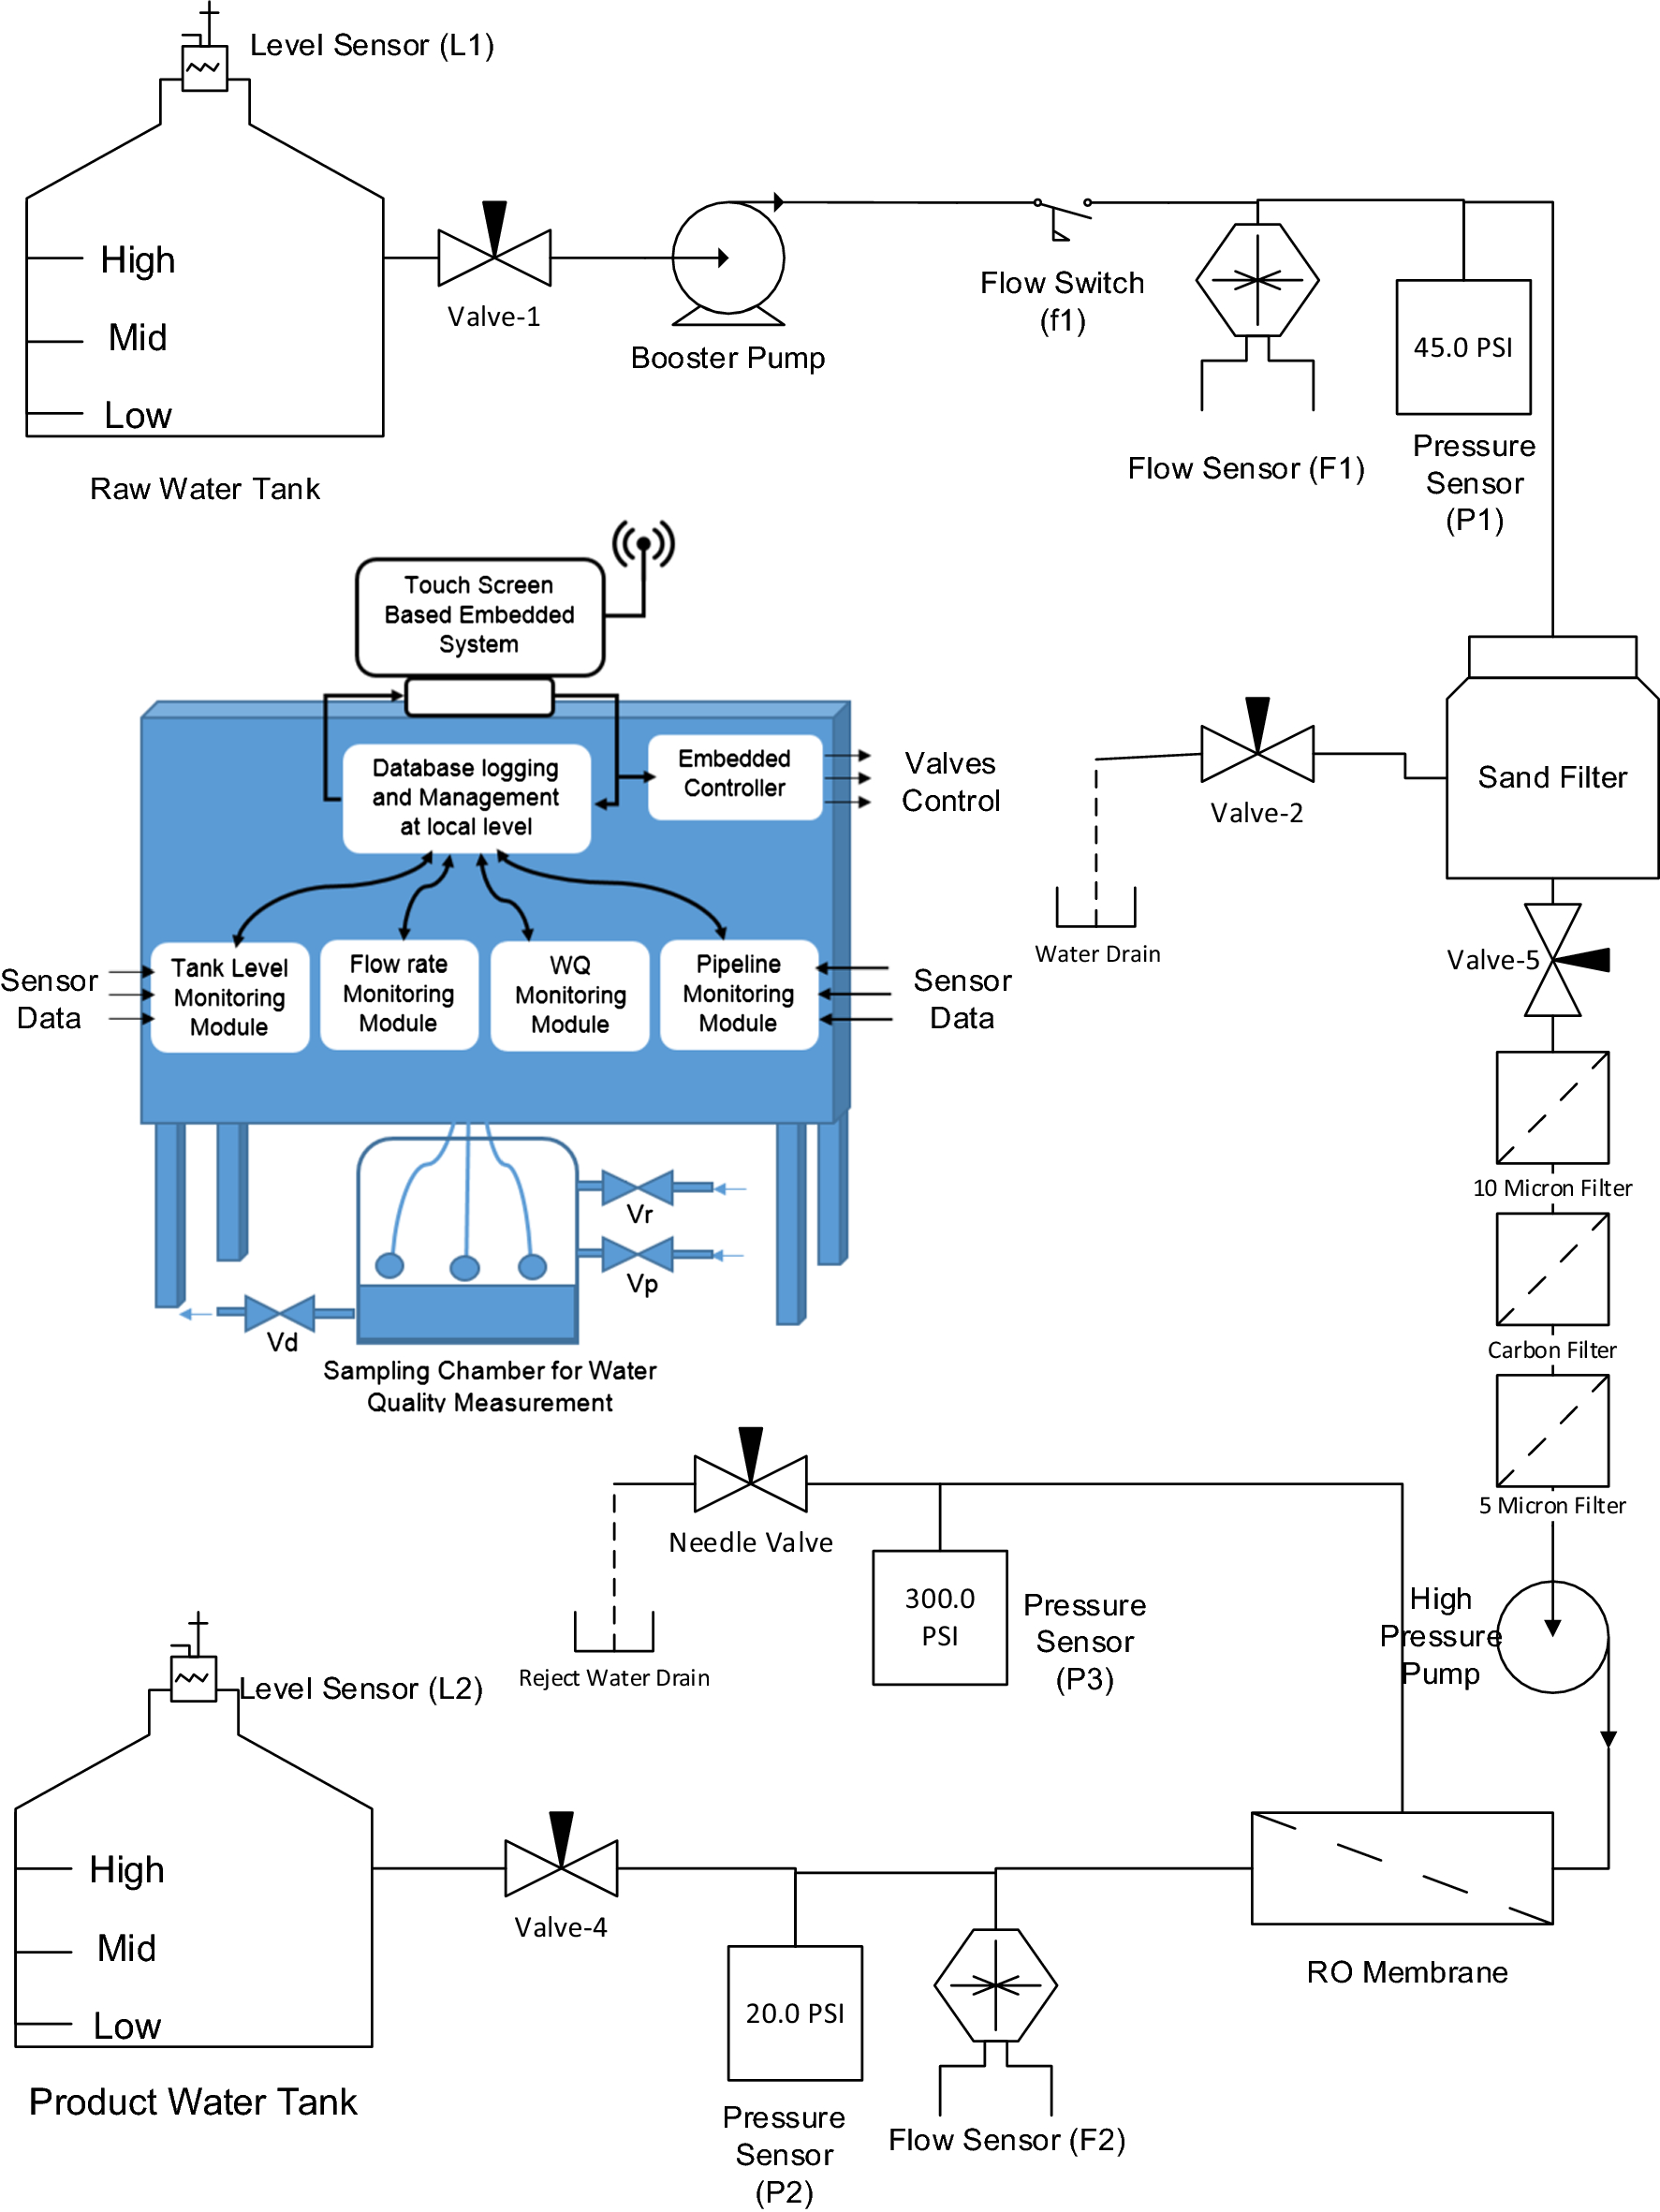 Design and development of reverse osmosis (RO) plant status